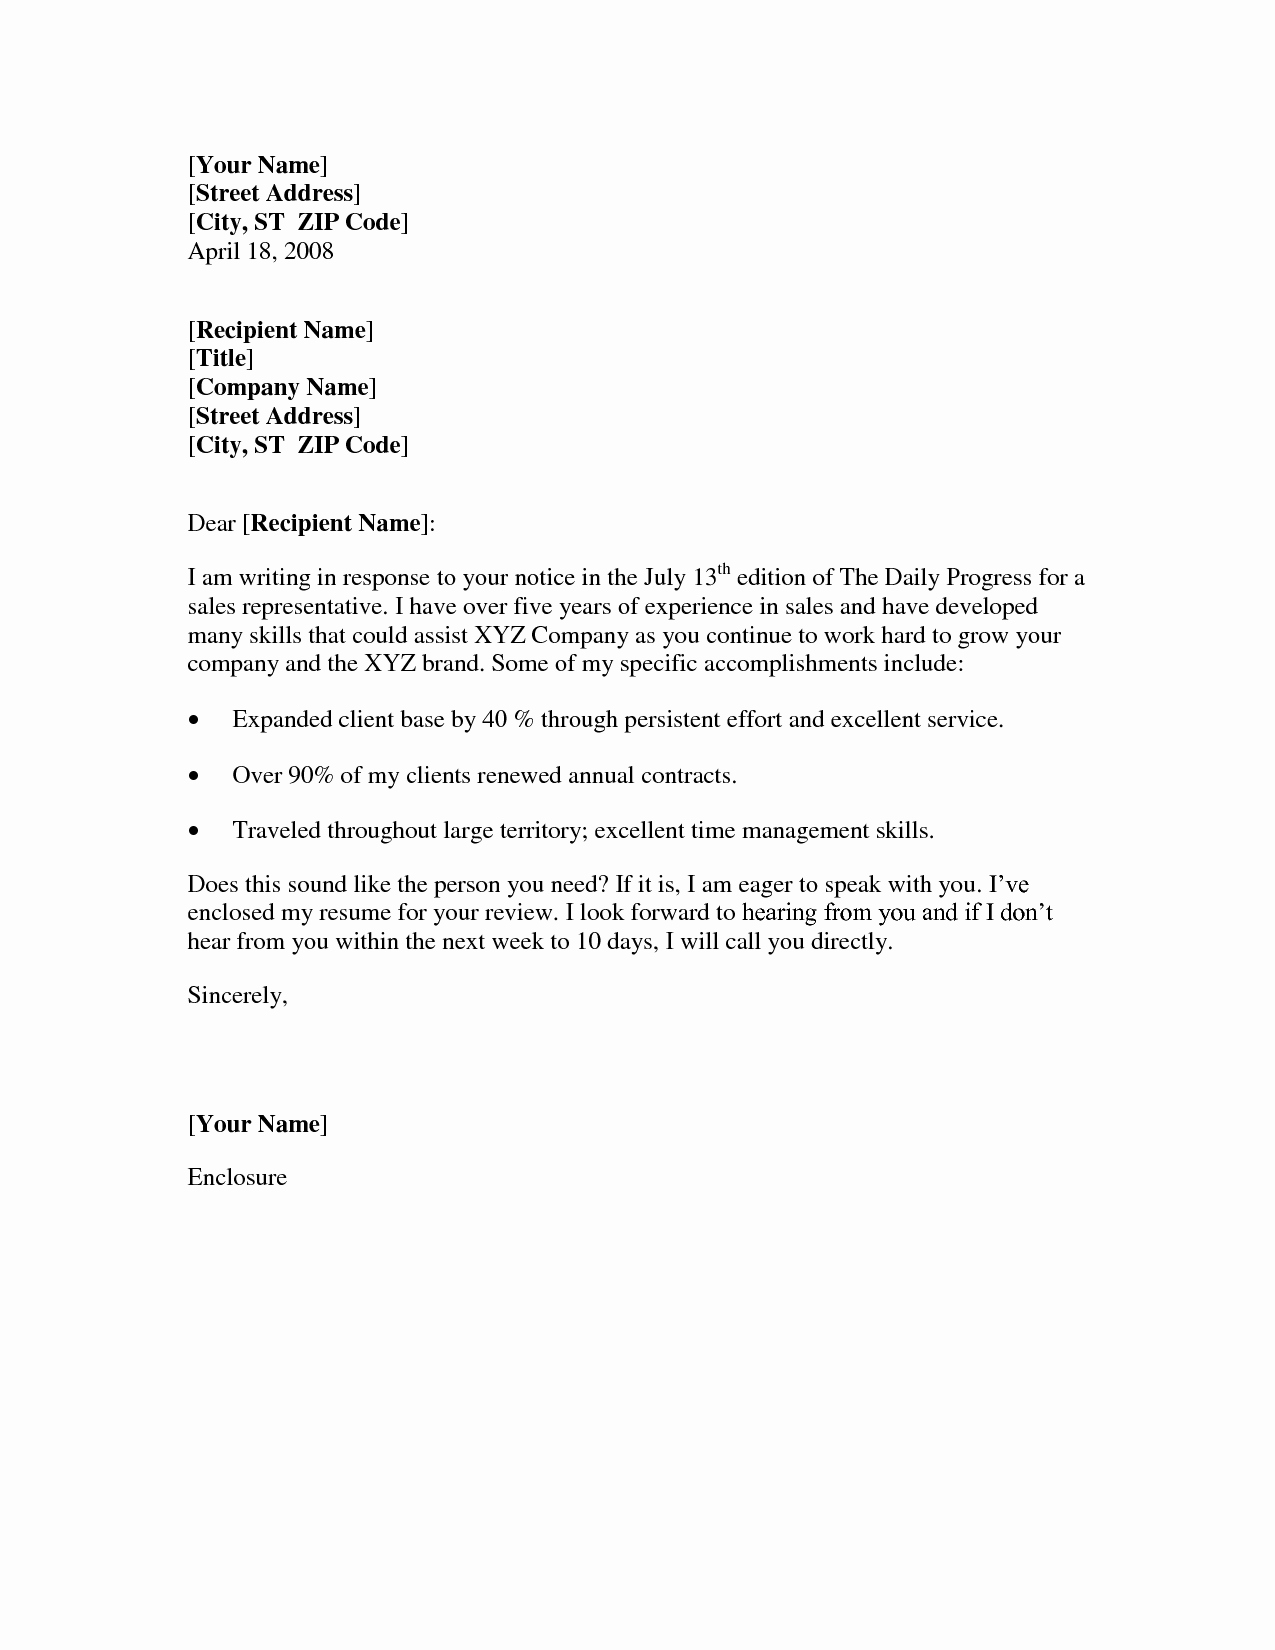 Simple Resume Cover Letter Template Awesome 10 Best Of Basic Cover Letter for Resume Sample